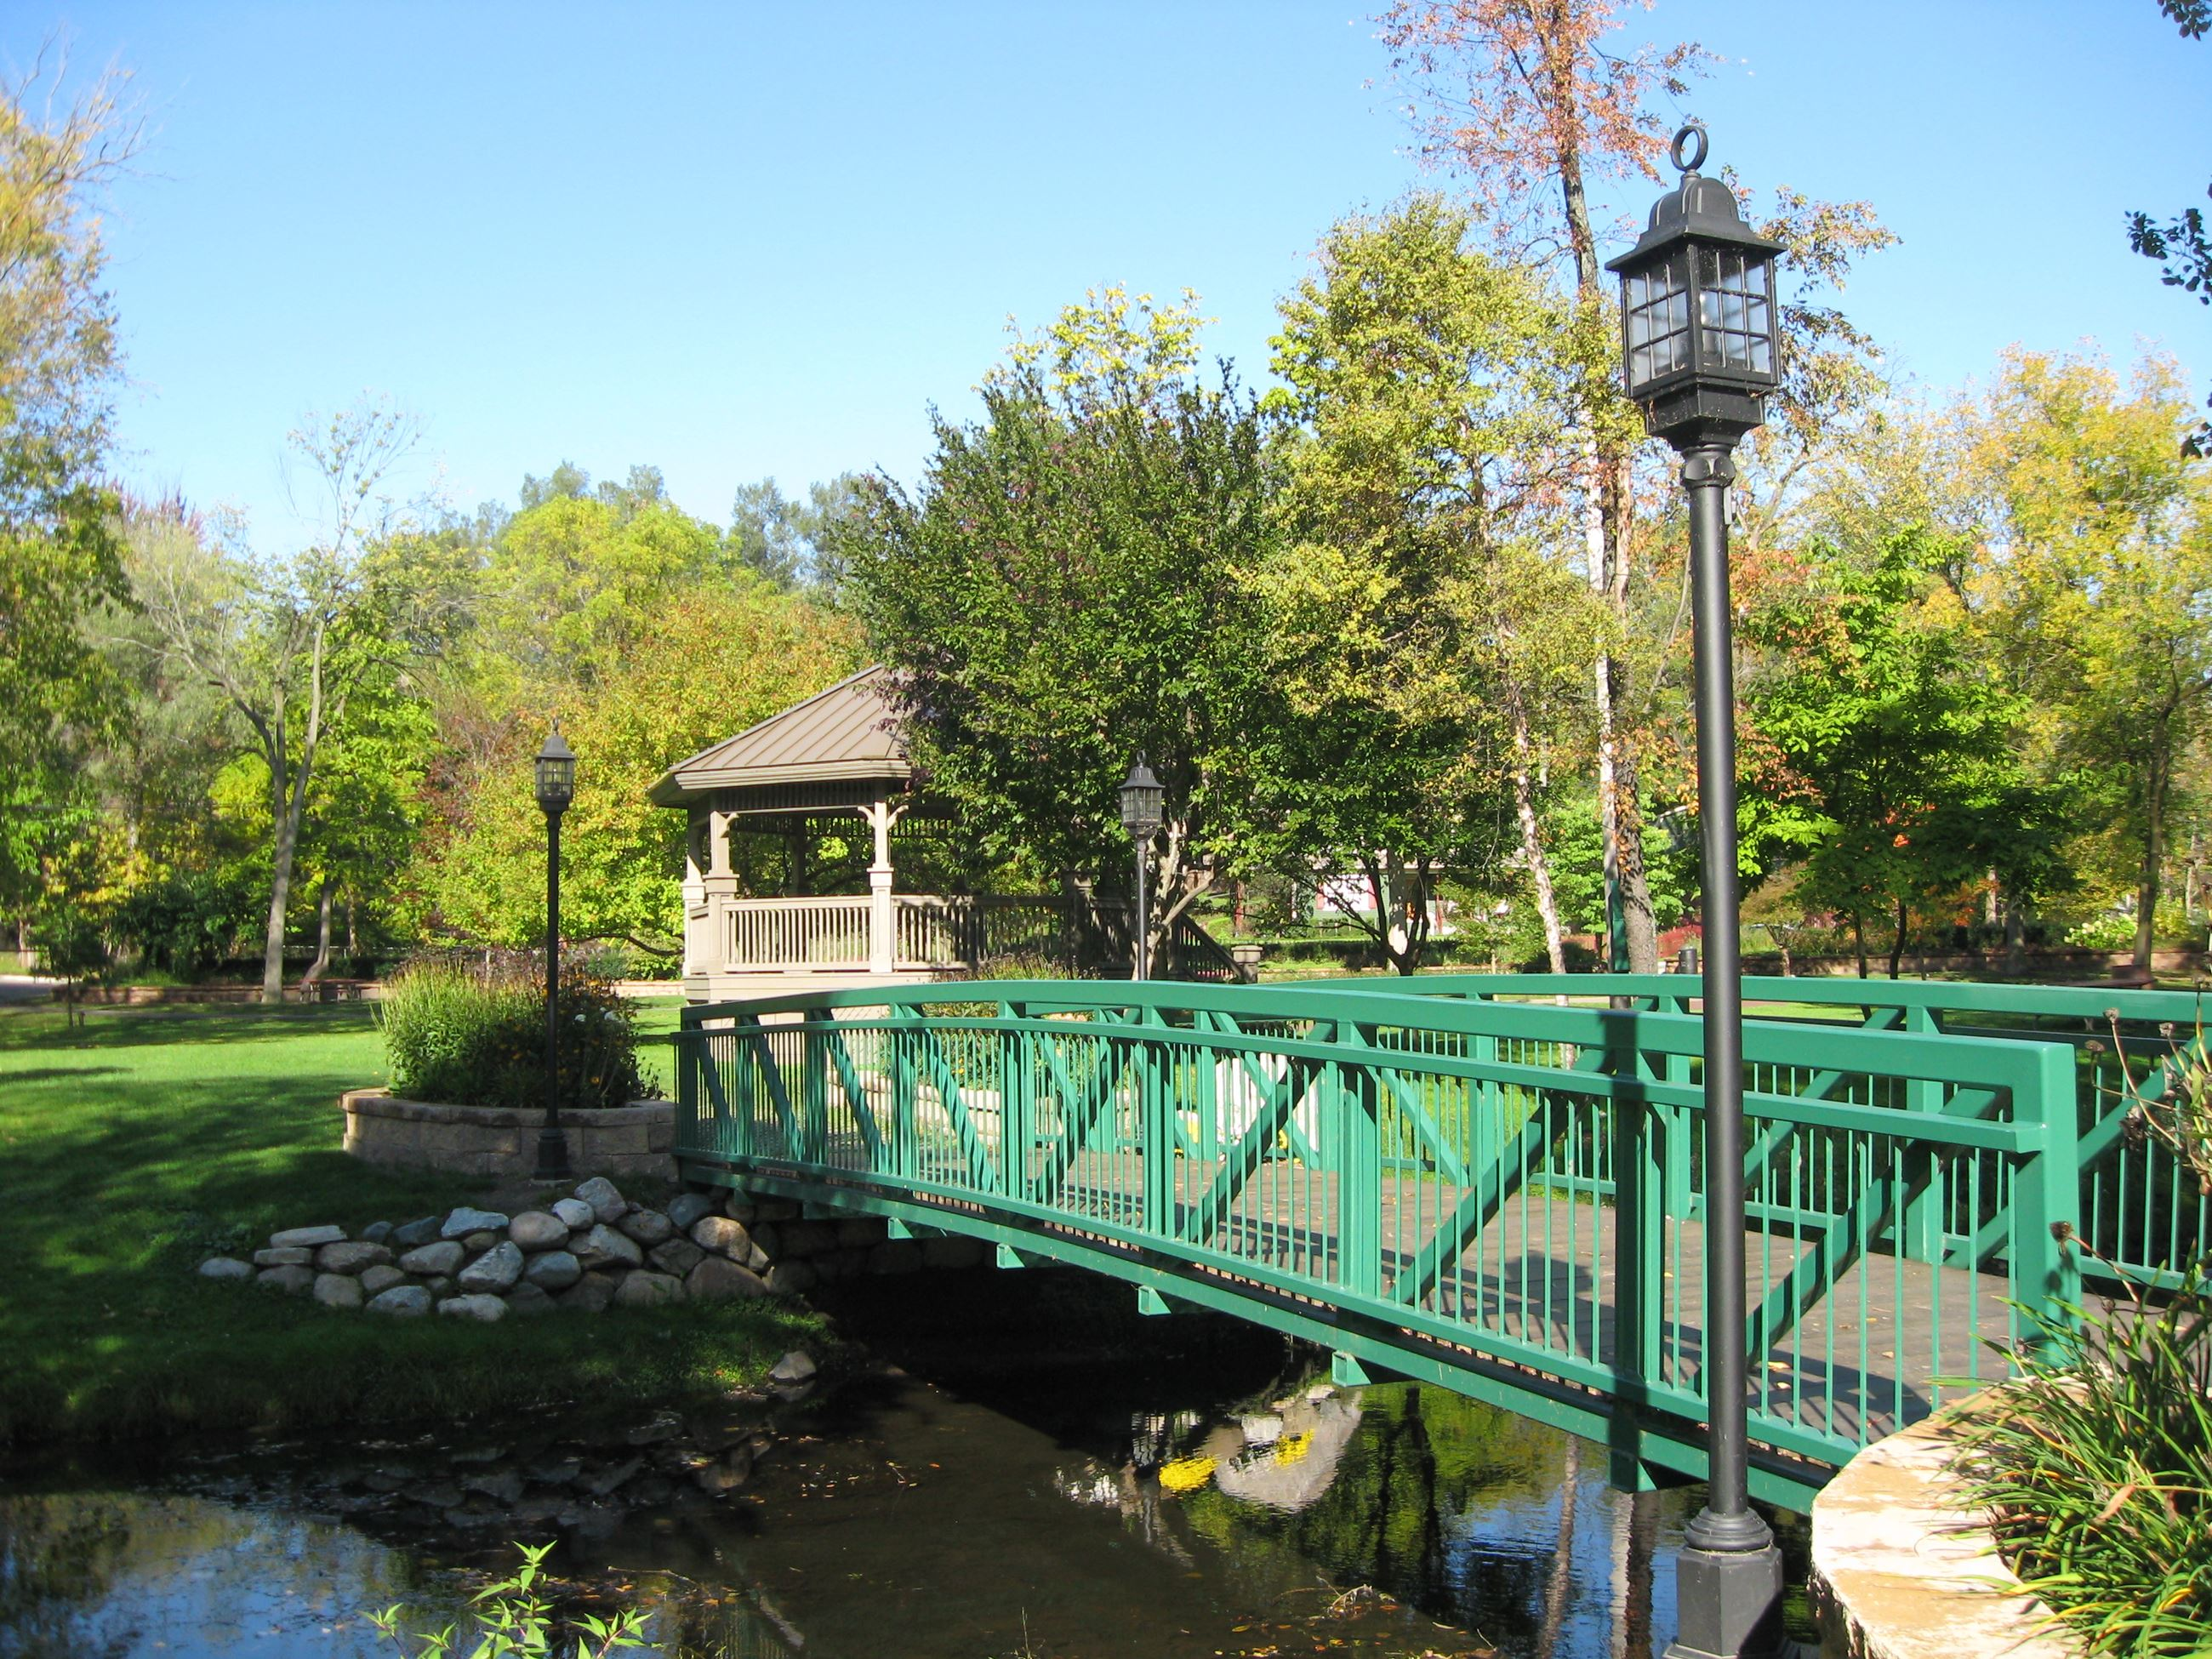 A bridge leading over a stream to a gazebo.